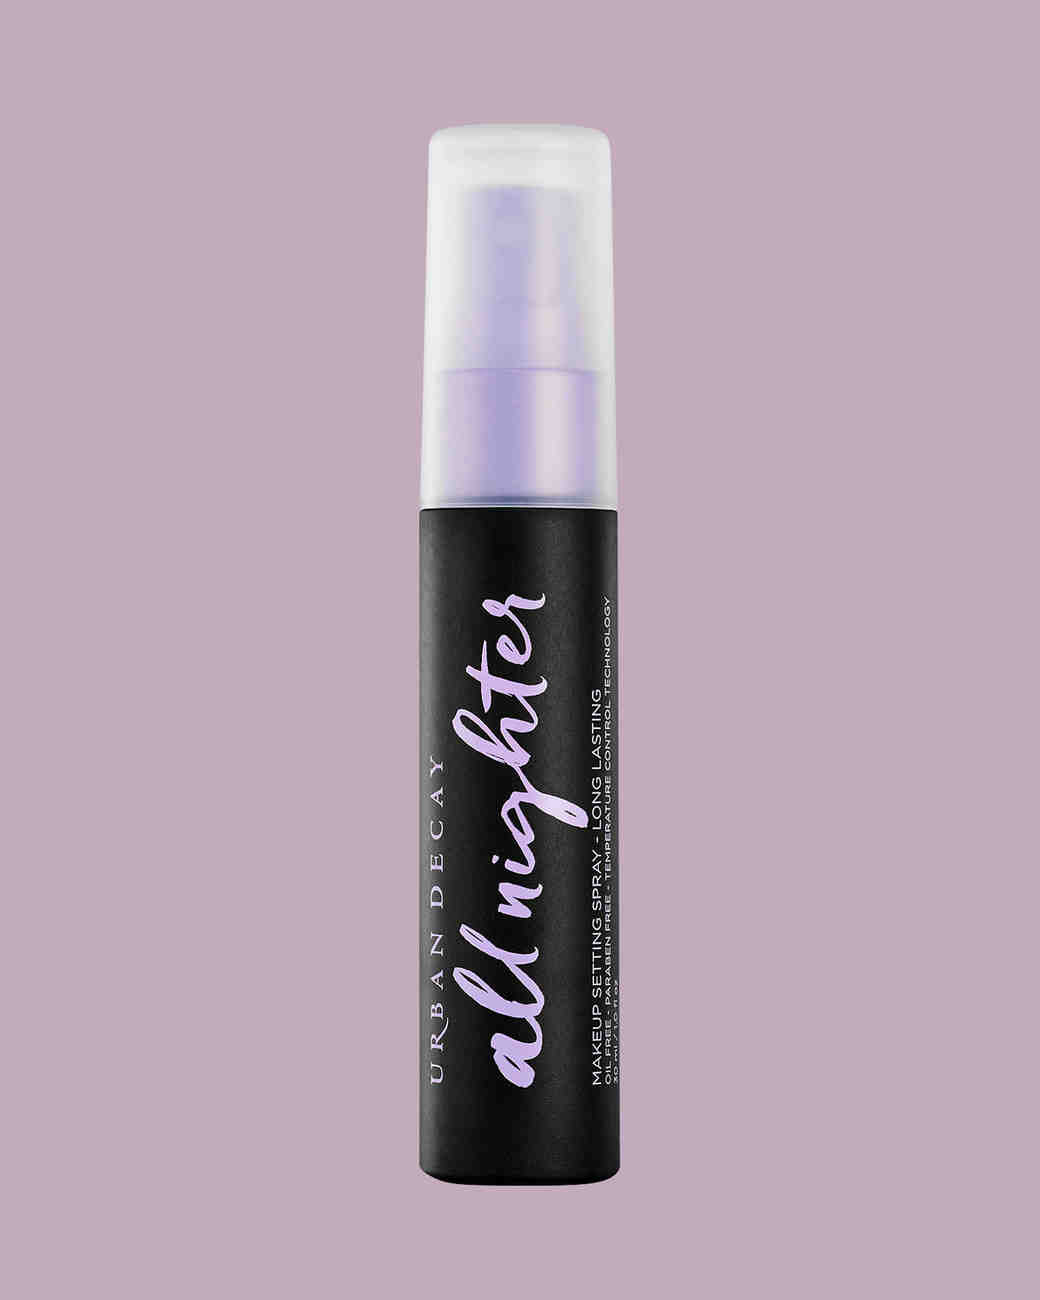 Urban Decay All Nighter Long-Lasting Makeup Setting Spray Mini